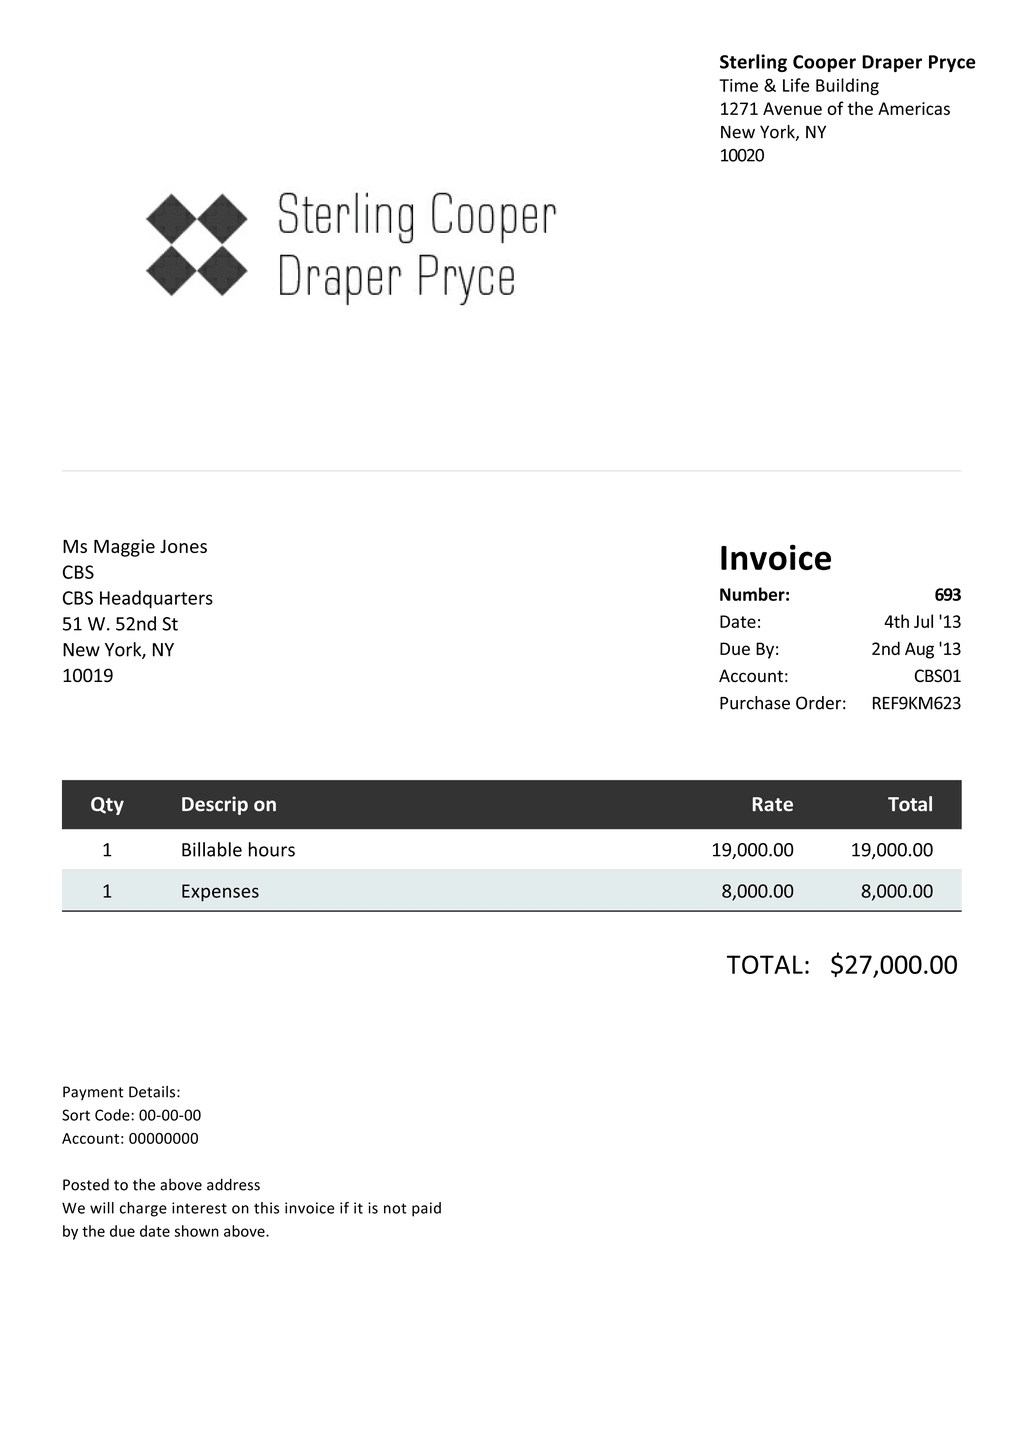 Proatmealus  Unusual Professional Invoice Template Job Invoice Template Free Cool  With Marvelous Producing Uamp Customising Invoices Using Kashflowus Templates  With Endearing Export Proforma Invoice Format Also Magento Pdf Invoice In Addition Sage Line  Invoice Template And Performance Invoice Sample As Well As Microsoft Excel Invoice Template Free Download Additionally Tnt Proforma Invoice From Sklepco With Proatmealus  Marvelous Professional Invoice Template Job Invoice Template Free Cool  With Endearing Producing Uamp Customising Invoices Using Kashflowus Templates  And Unusual Export Proforma Invoice Format Also Magento Pdf Invoice In Addition Sage Line  Invoice Template From Sklepco